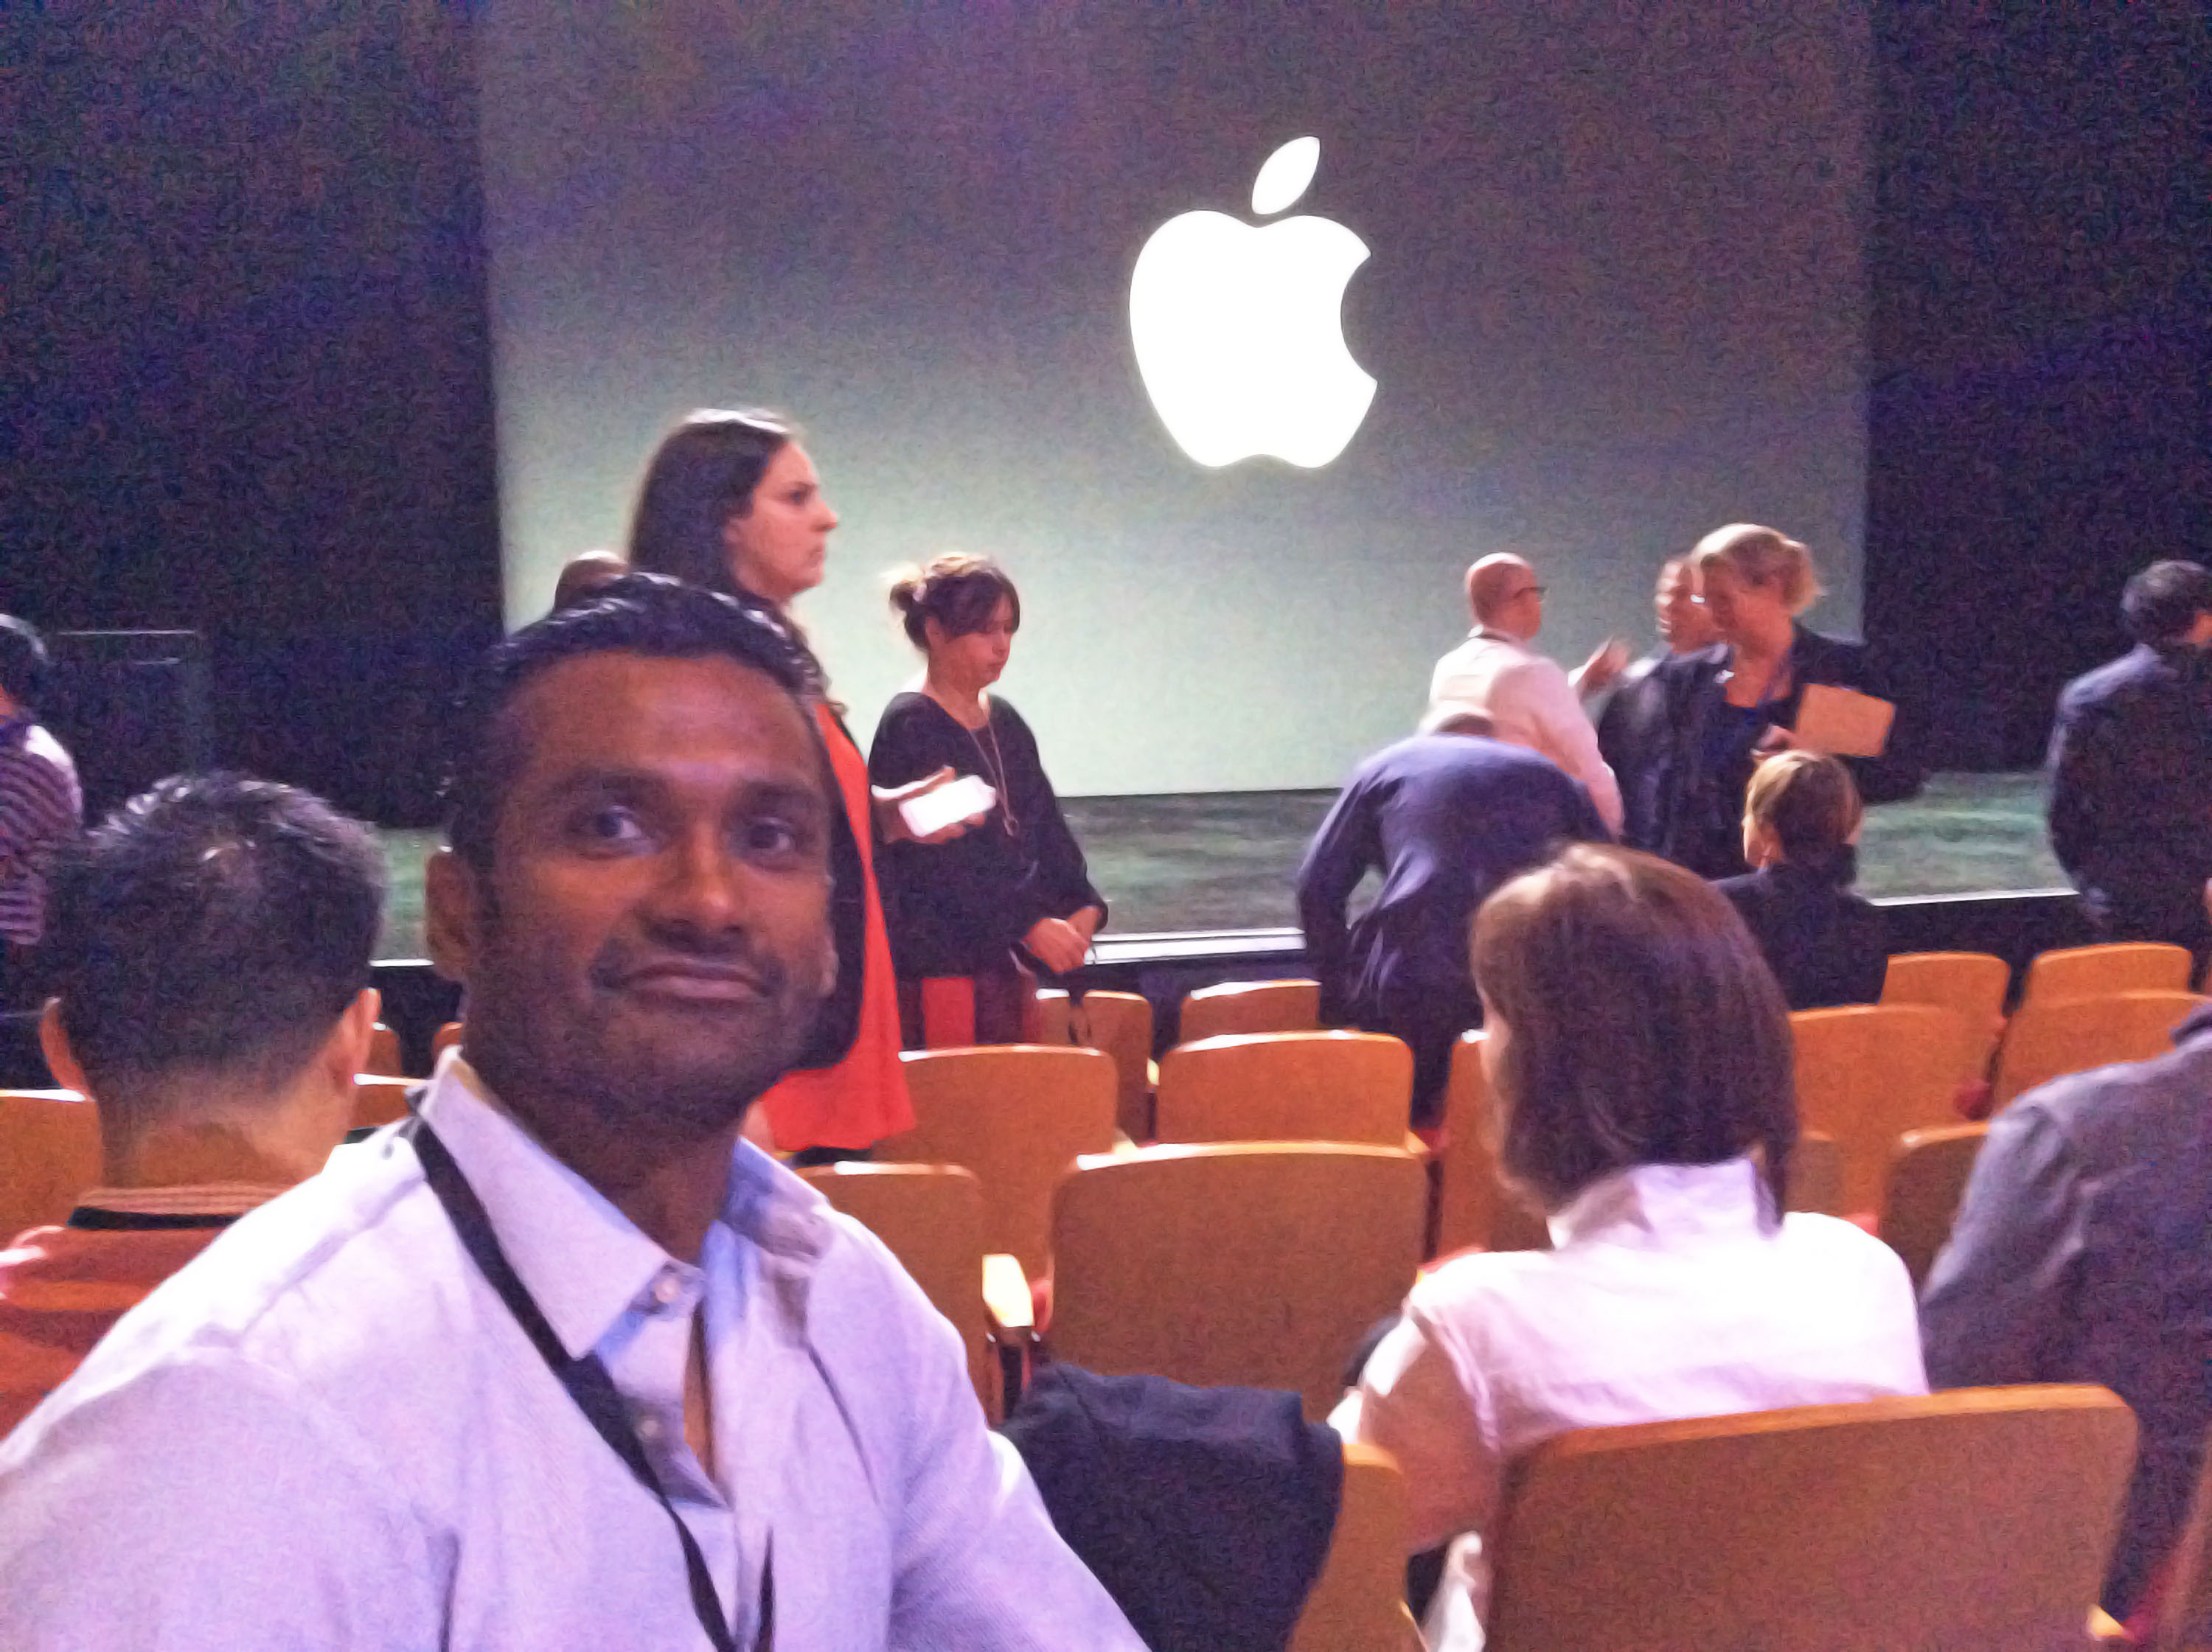 Avin_Arumugam_at_Apple_Live